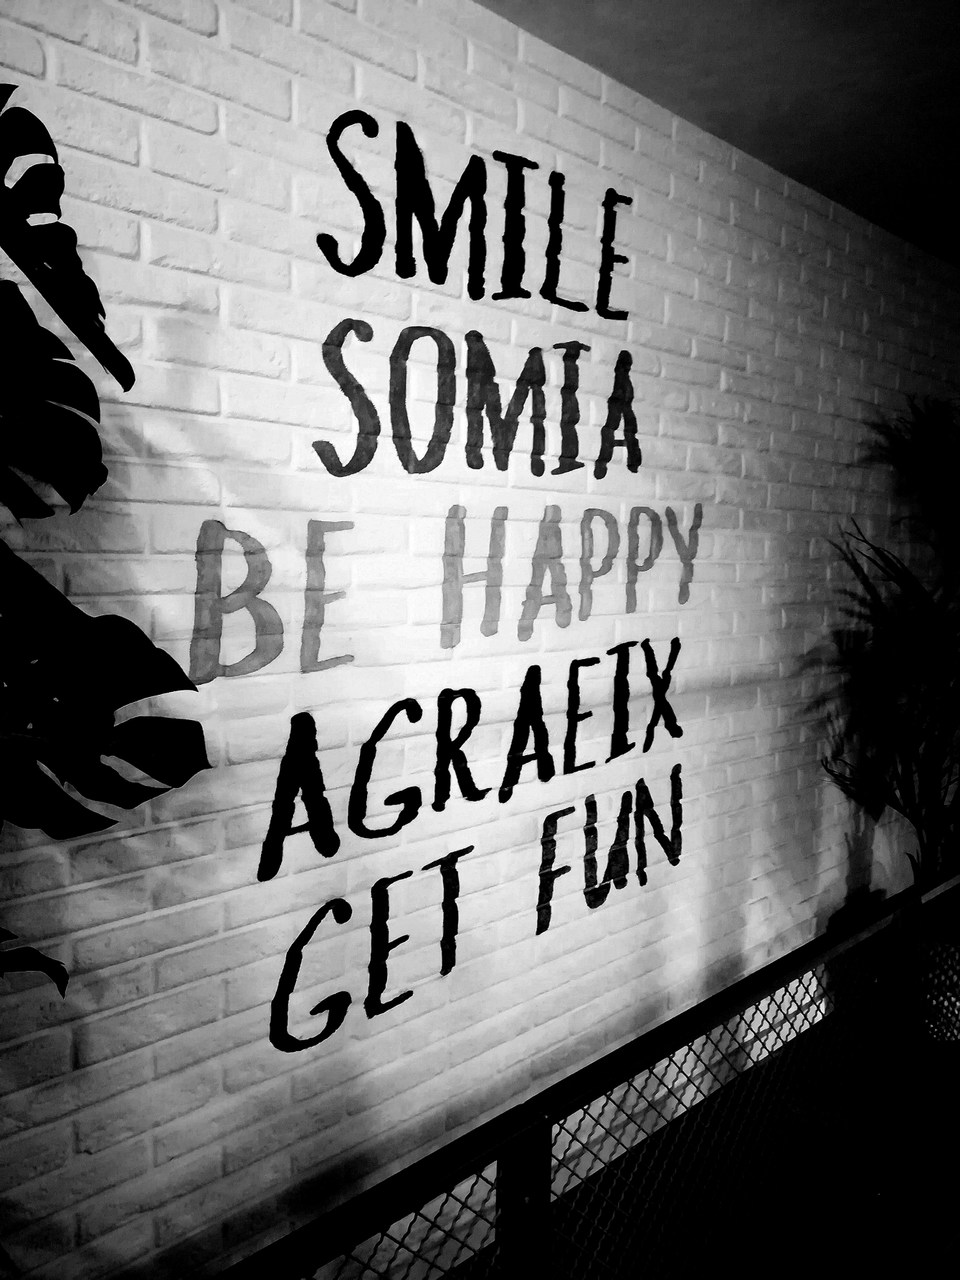 SMILE BE HAPPY GET FUN